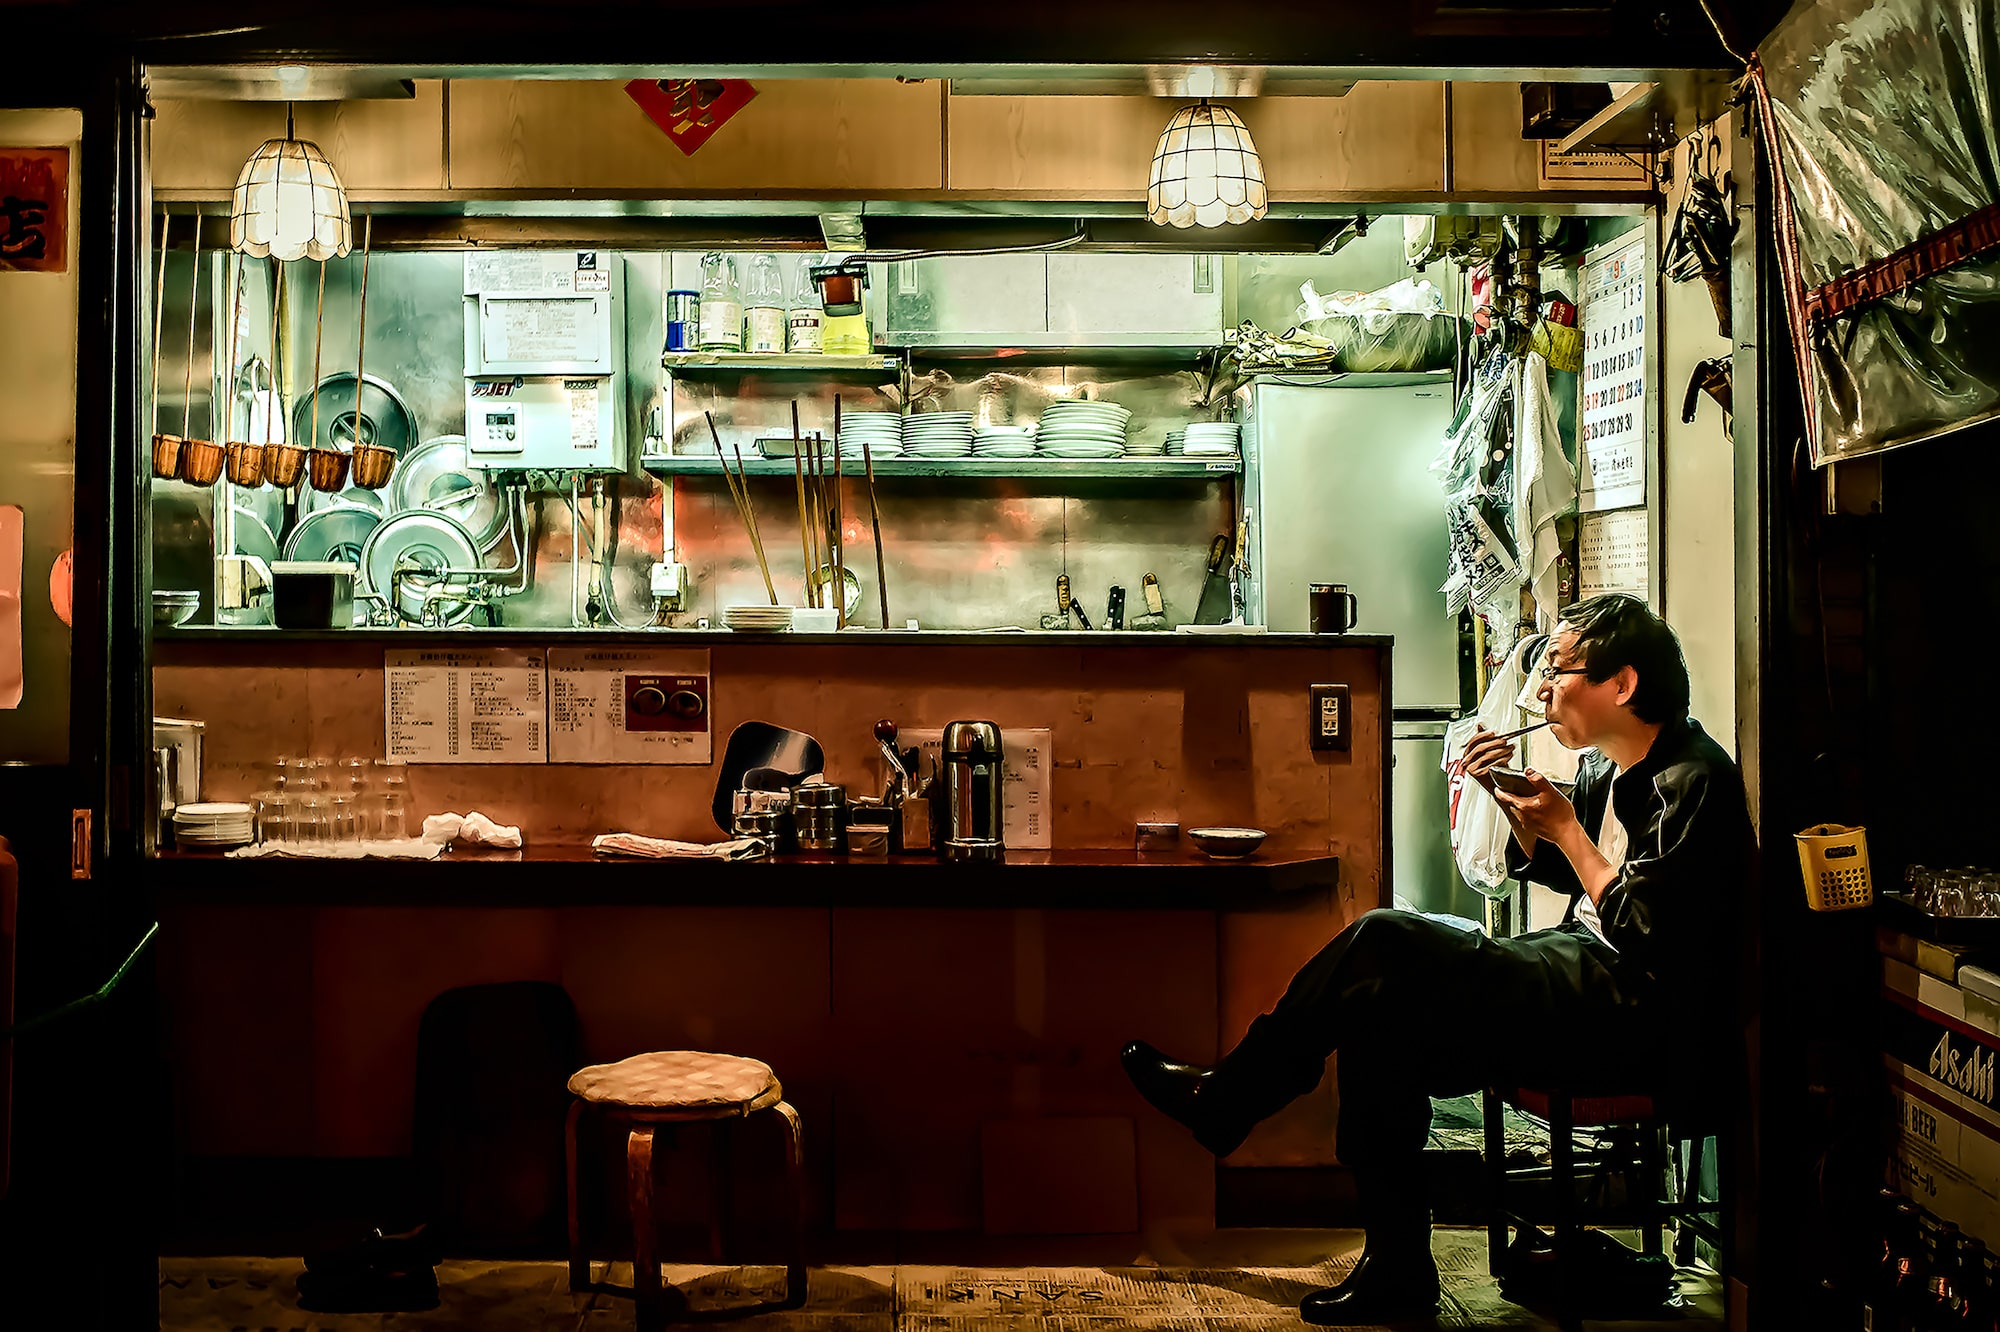 gabor erdelyi sony alpha 7RII man sits under moody lighting in kitchen eating with chopsticks